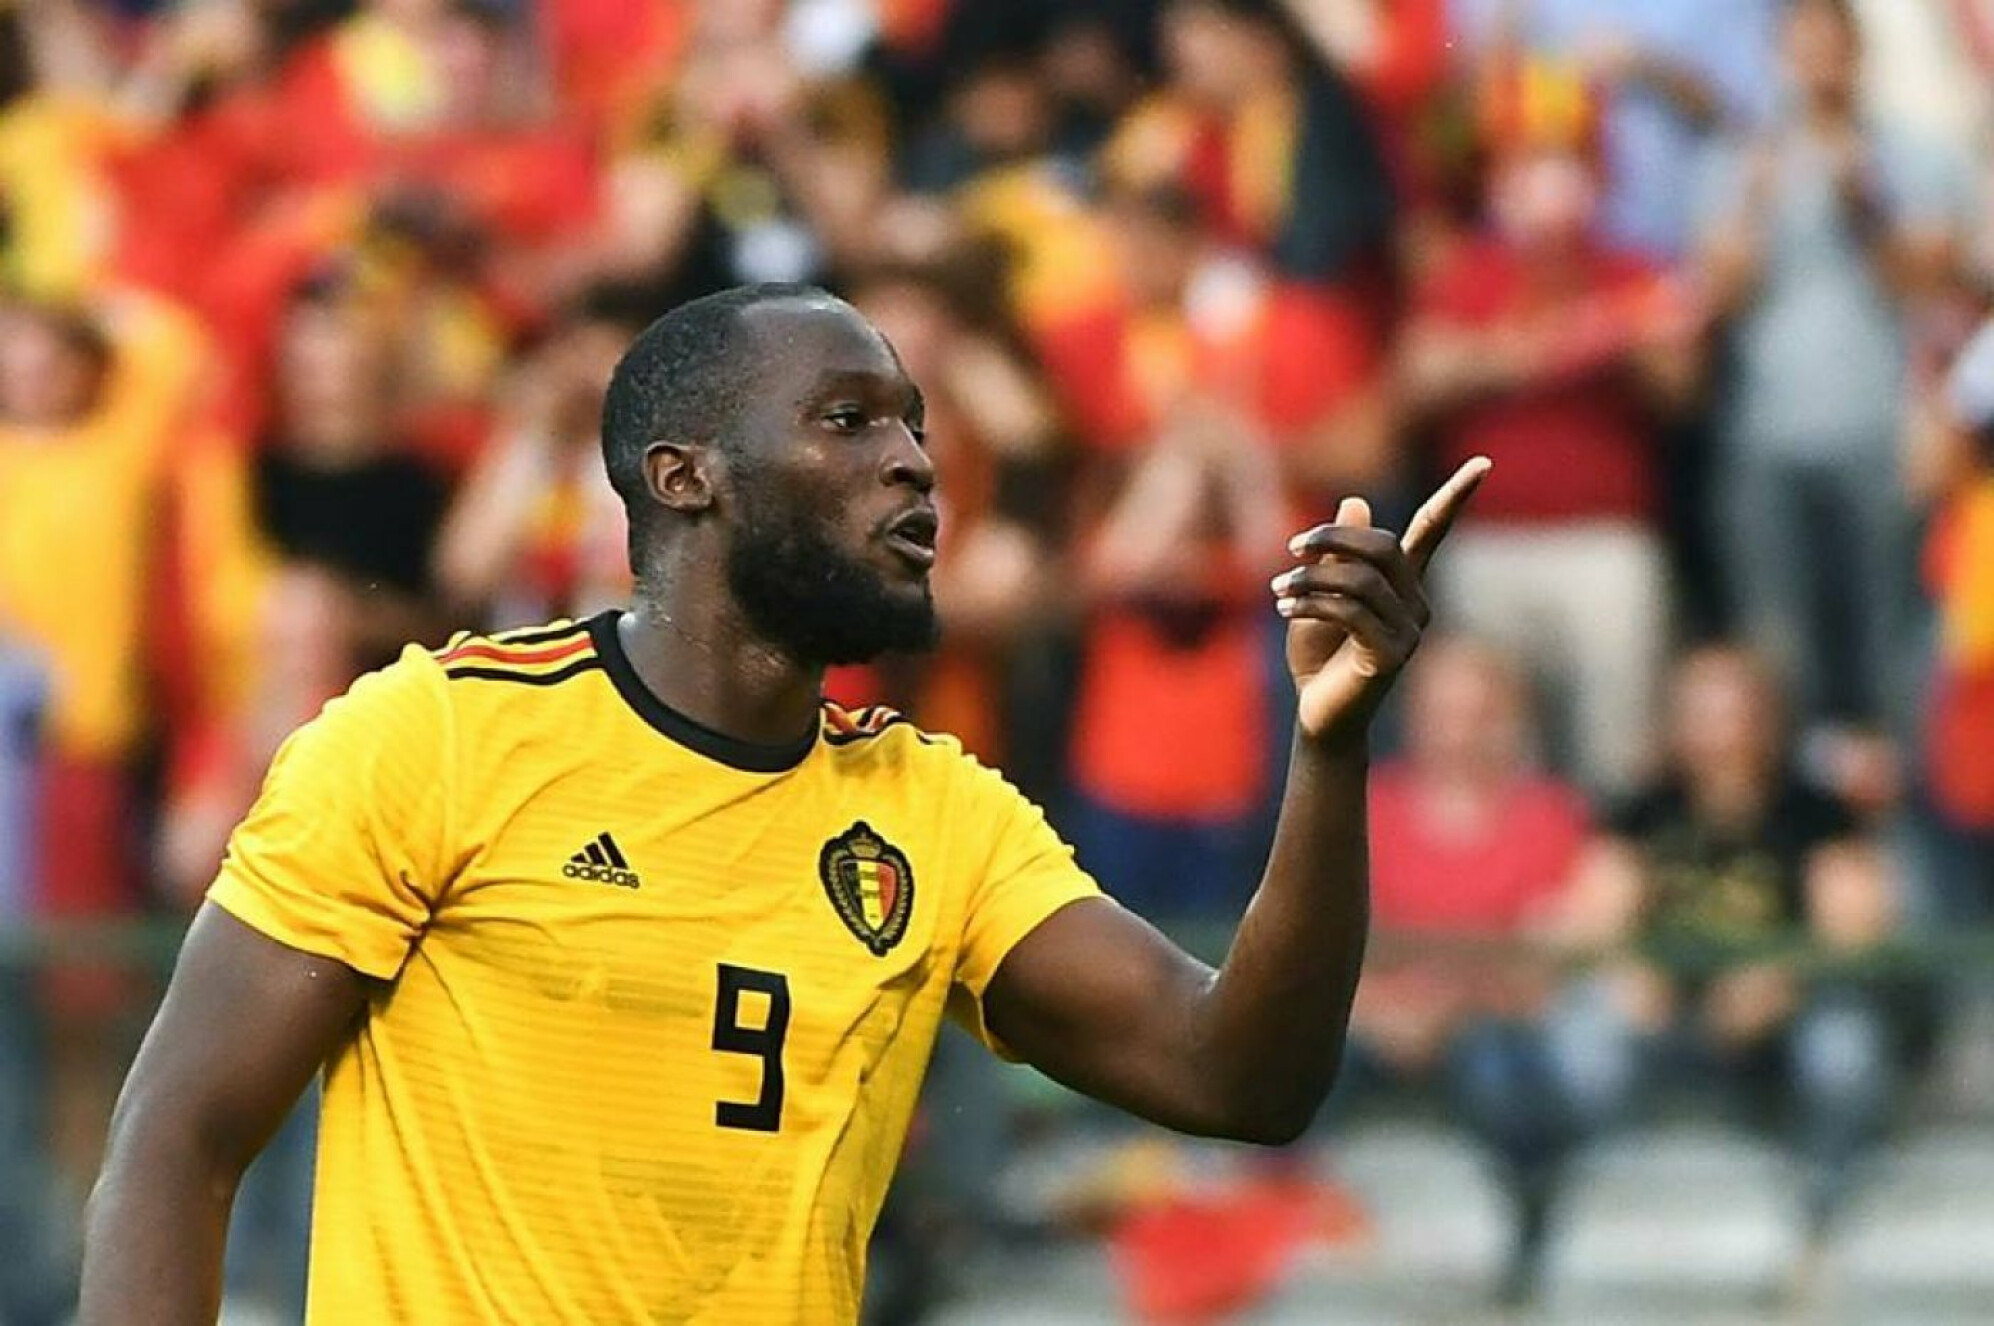 Romelu lukaku: The story of my life